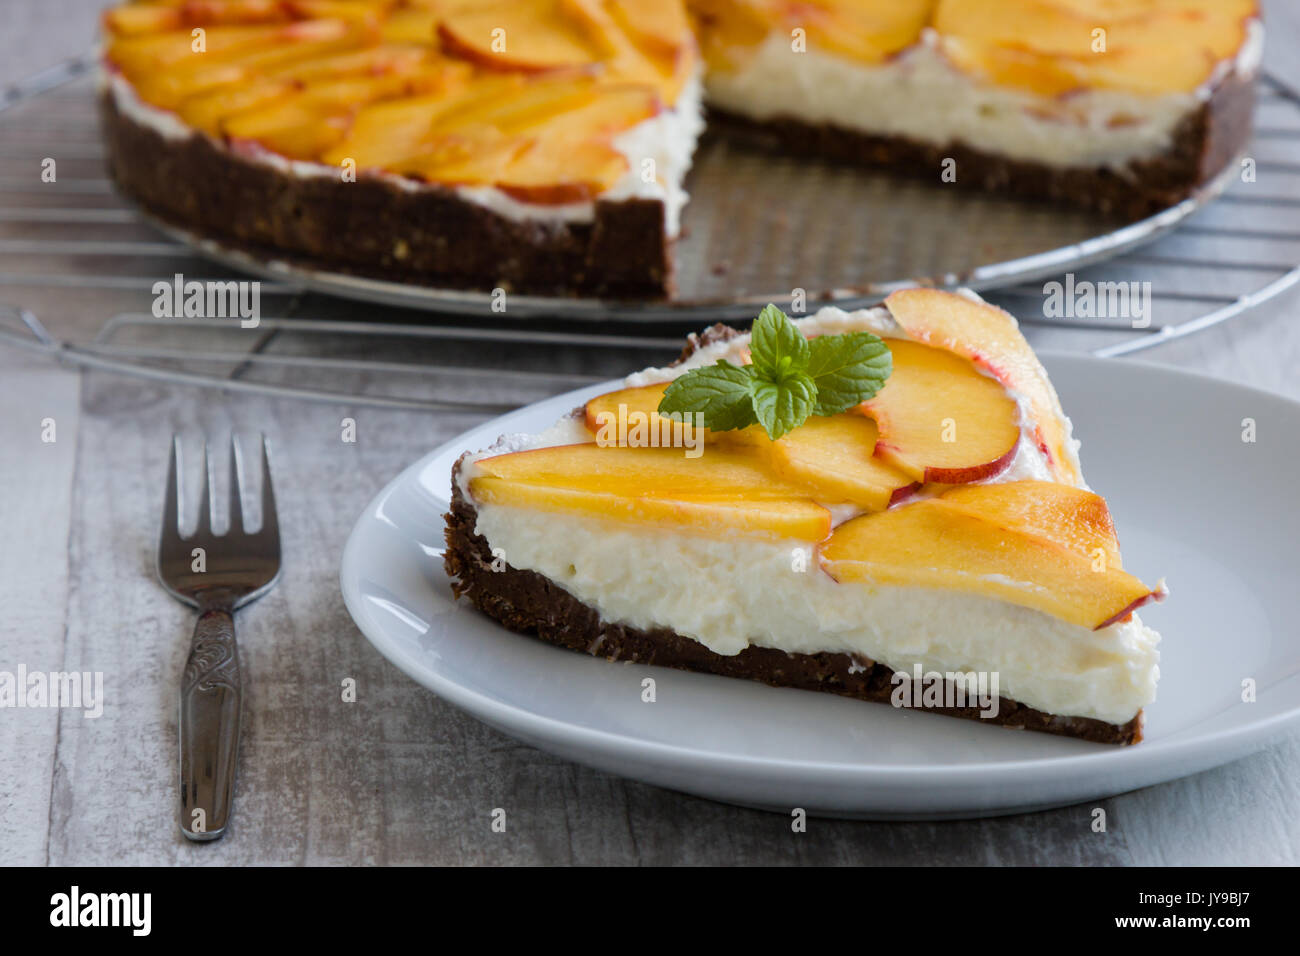 cheesecake dessert with thin slices of peach - Stock Image